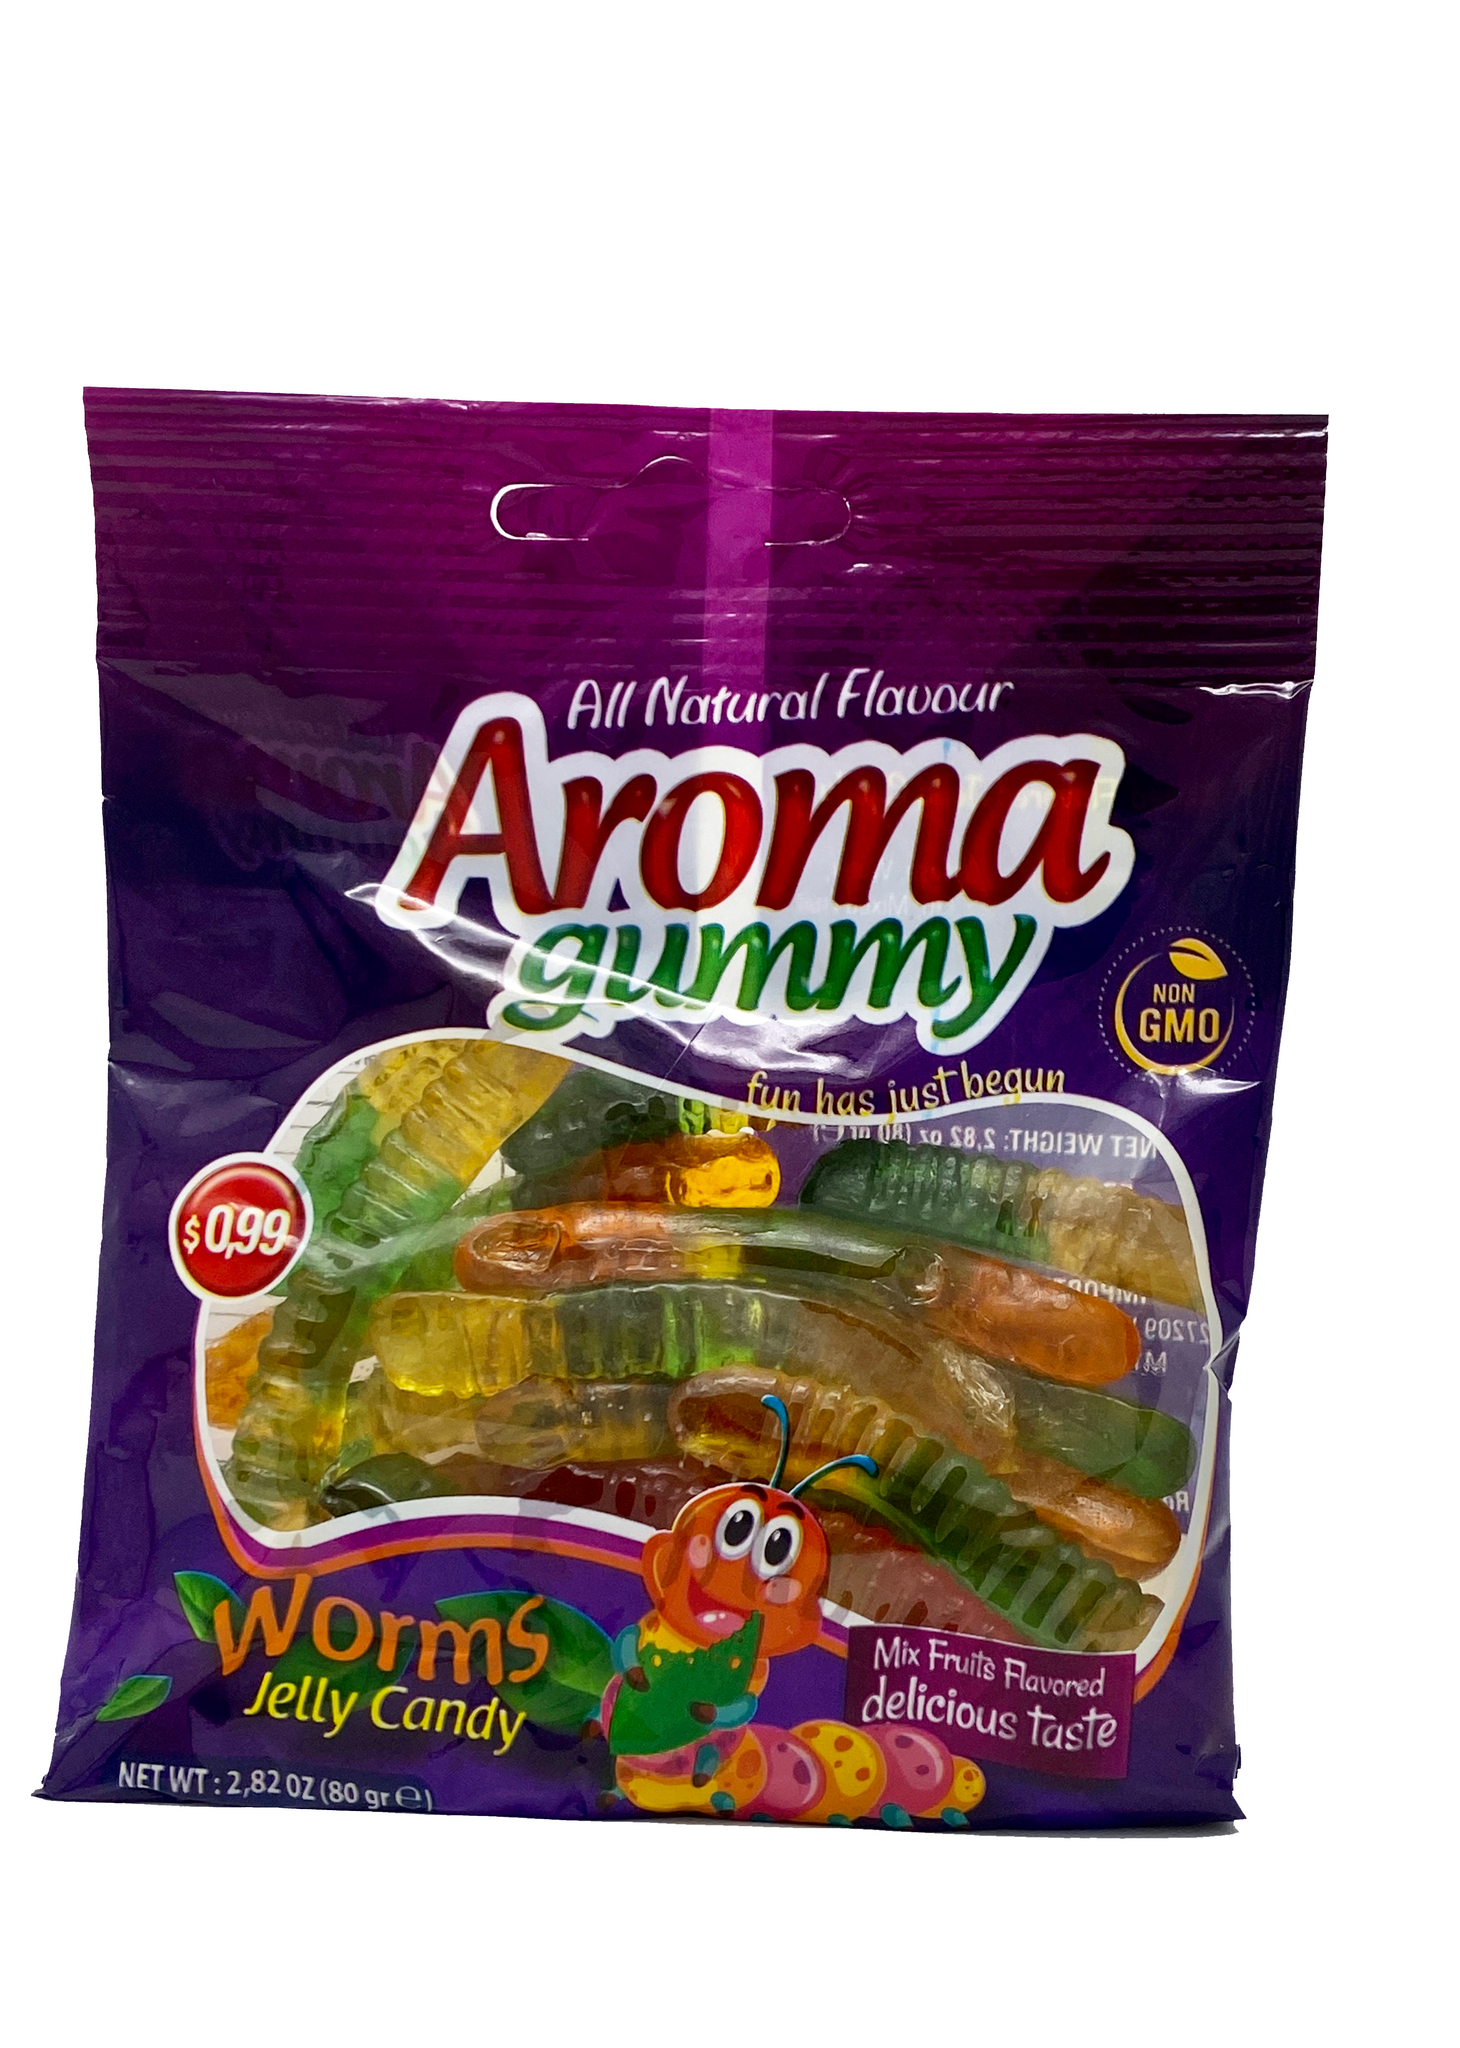 Aroma Halal Gummy Worms (3x80g) - Turkish Jole Gummi Candy